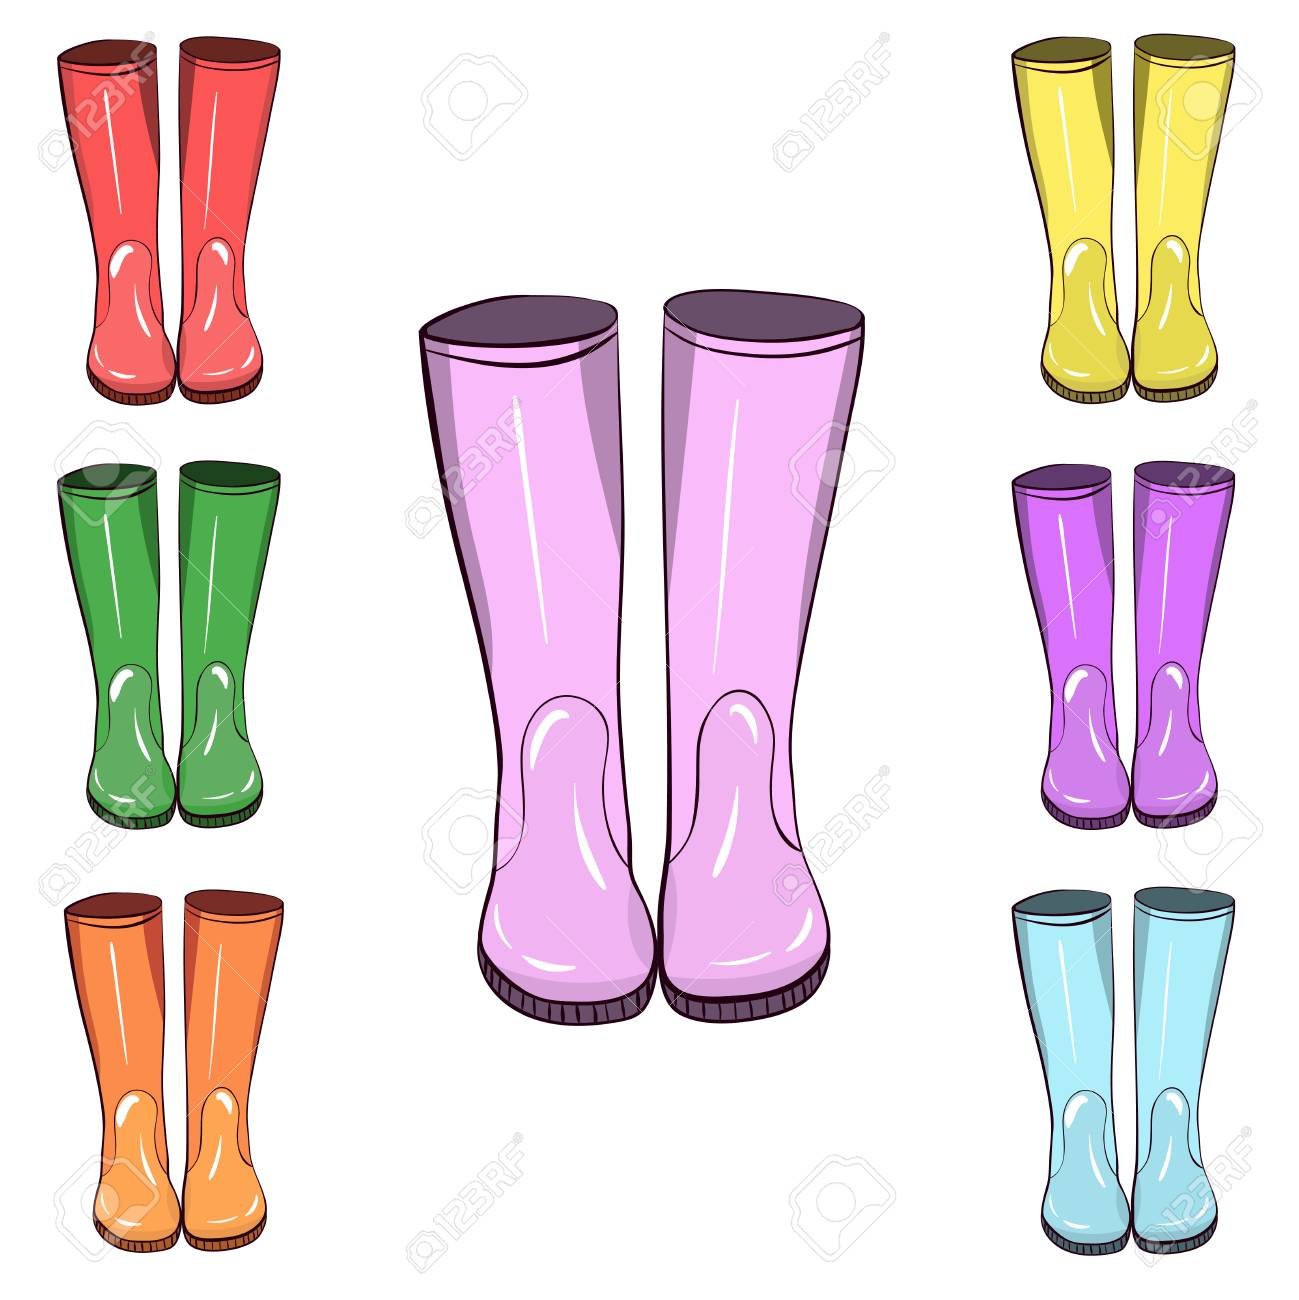 Rubber boots, gumboots. Hand drawn, vector isolated illustration. Protect from water and mucky terrain - 112198450